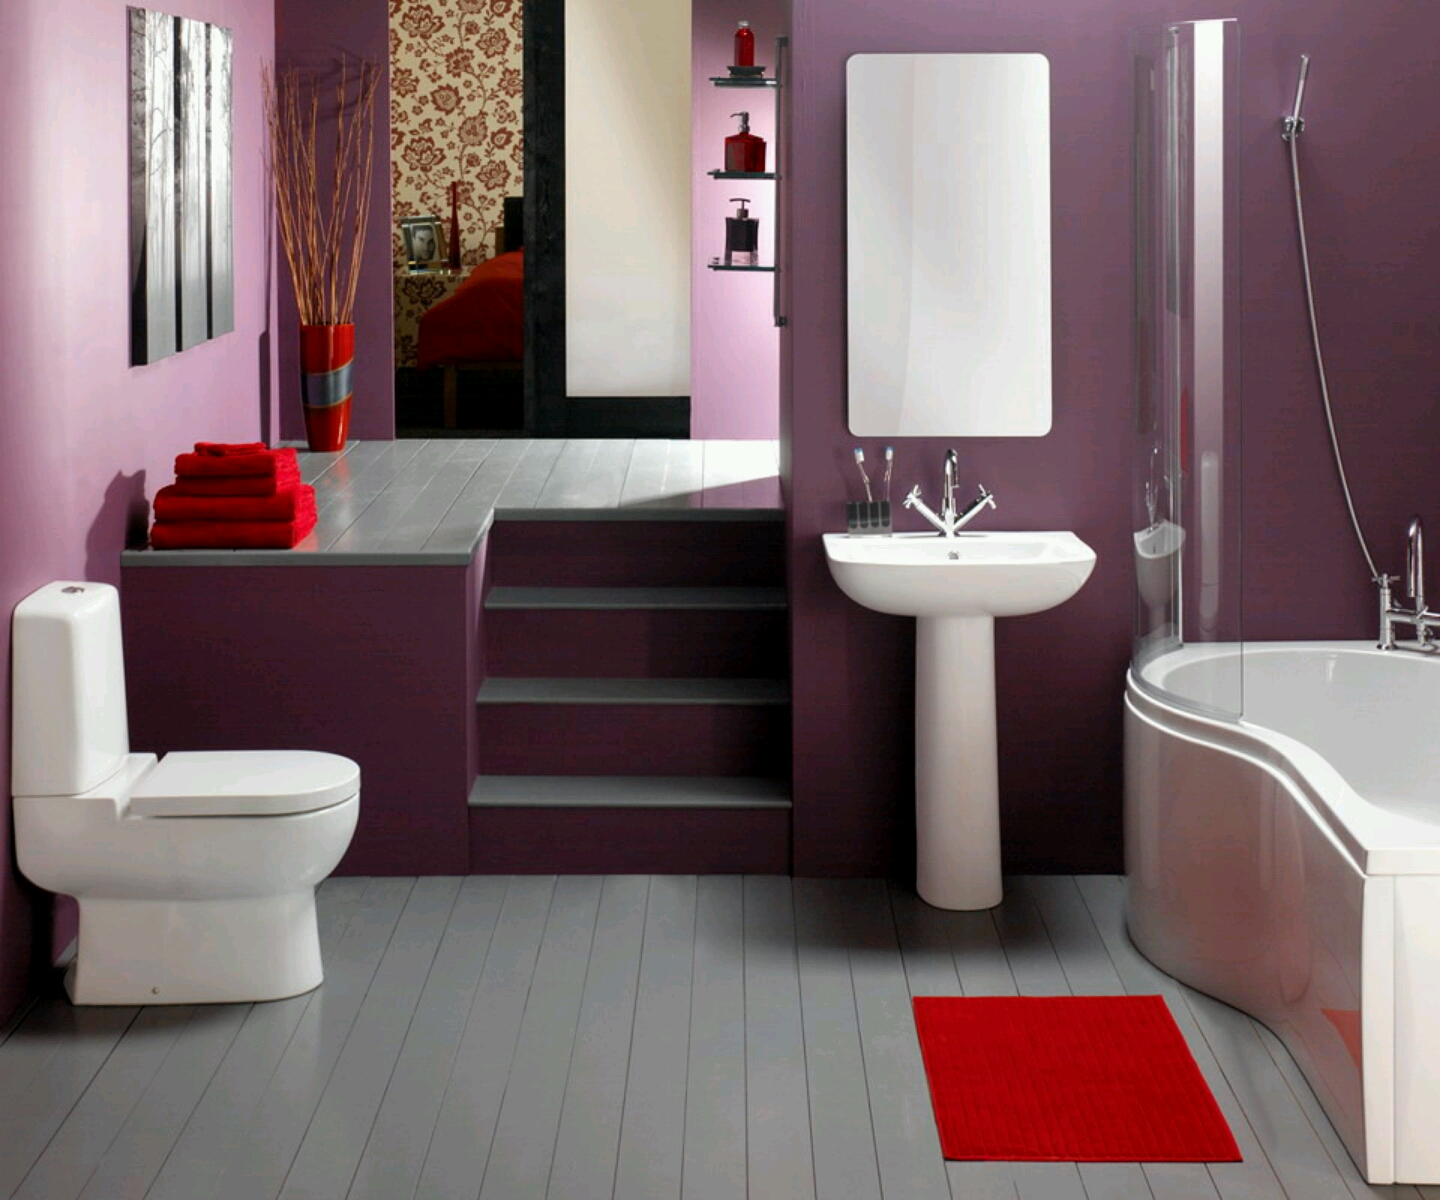 New home designs latest luxury modern bathrooms designs for Simple modern interior design